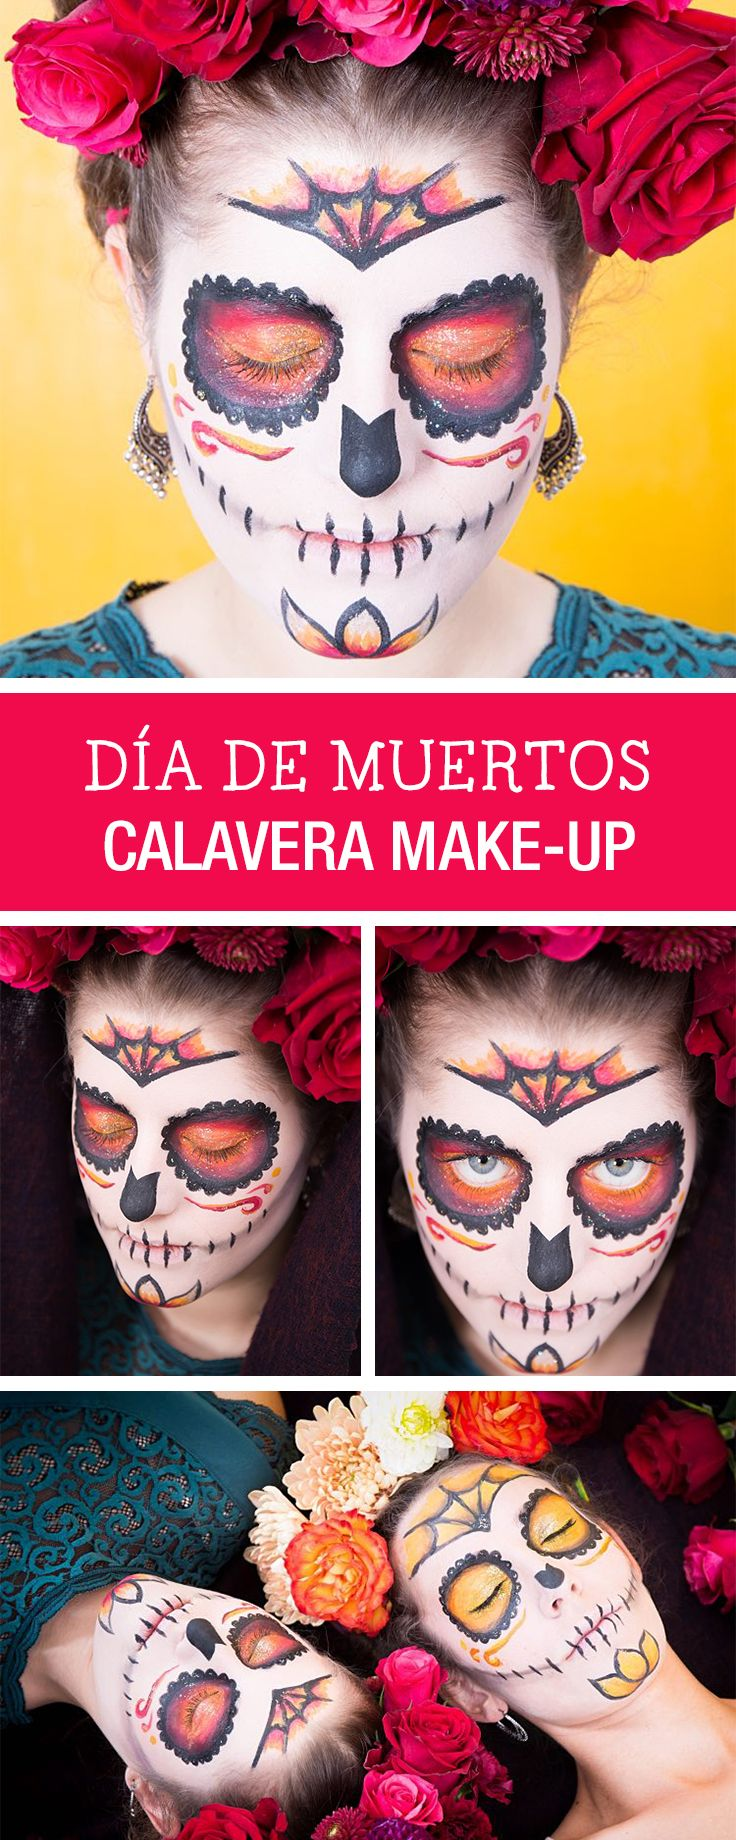 Dia de Muertos: Calavera Make-Up selbermachen, Halloween Kostüm / perfect halloween costume: how to make a calavera make up via DaWanda.com